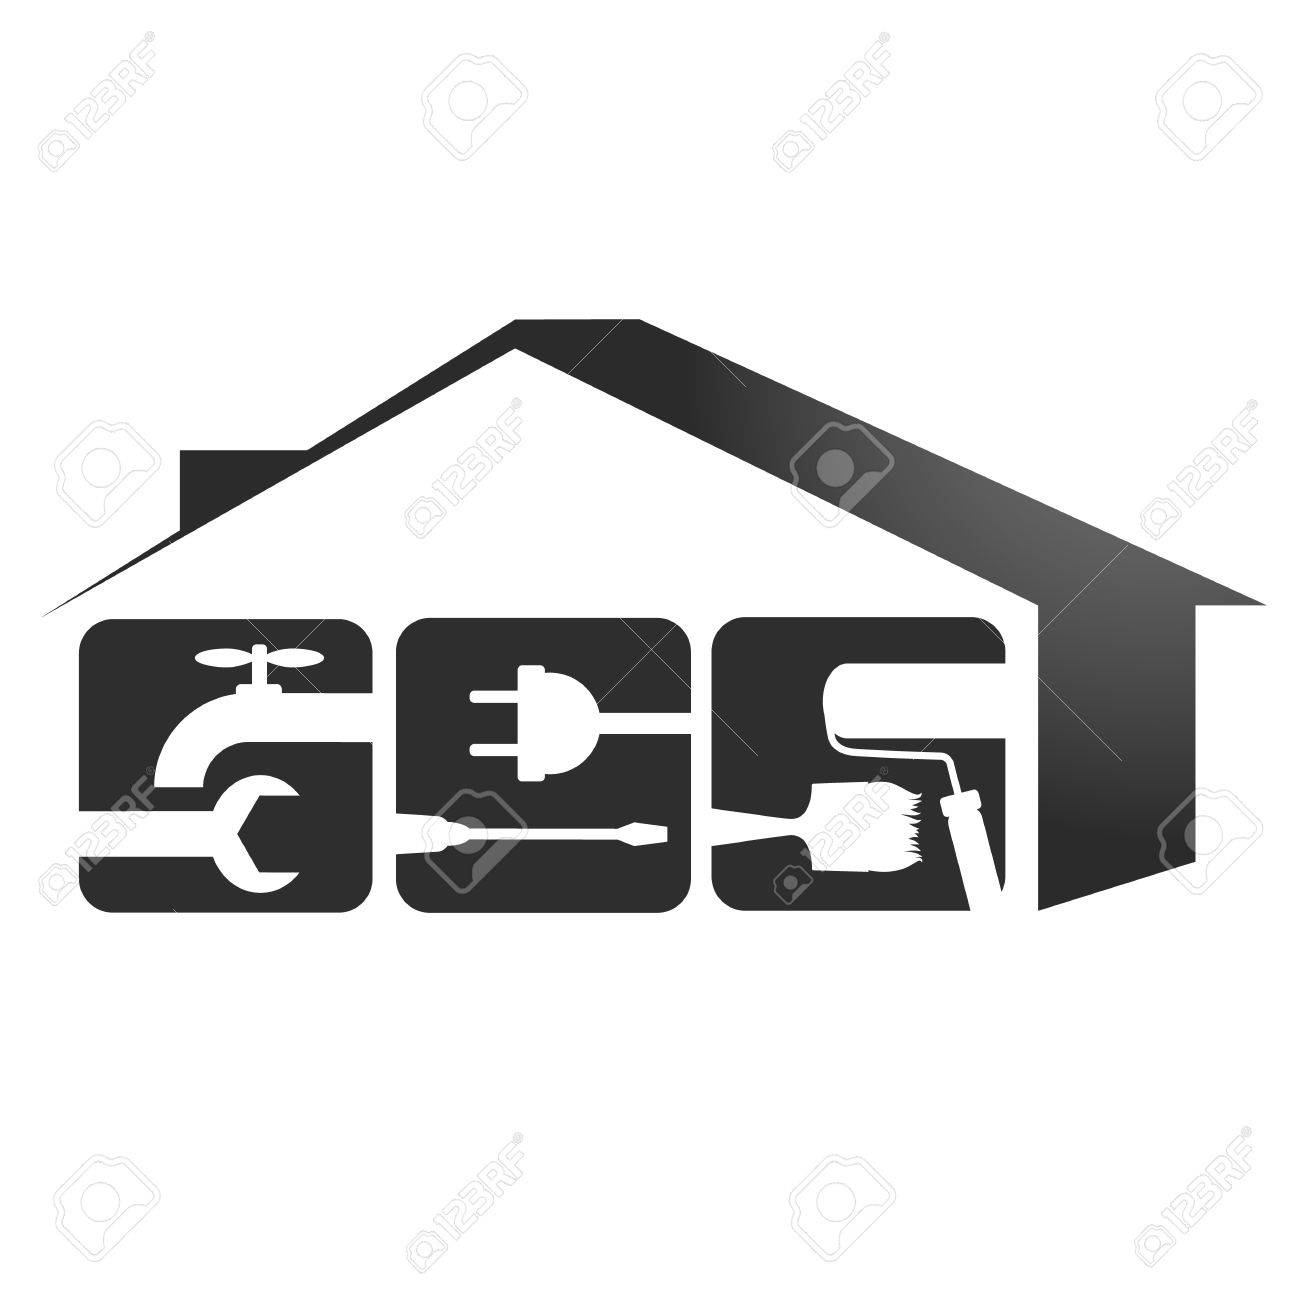 6,108 Home Maintenance Stock Vector Illustration And Royalty Free ...